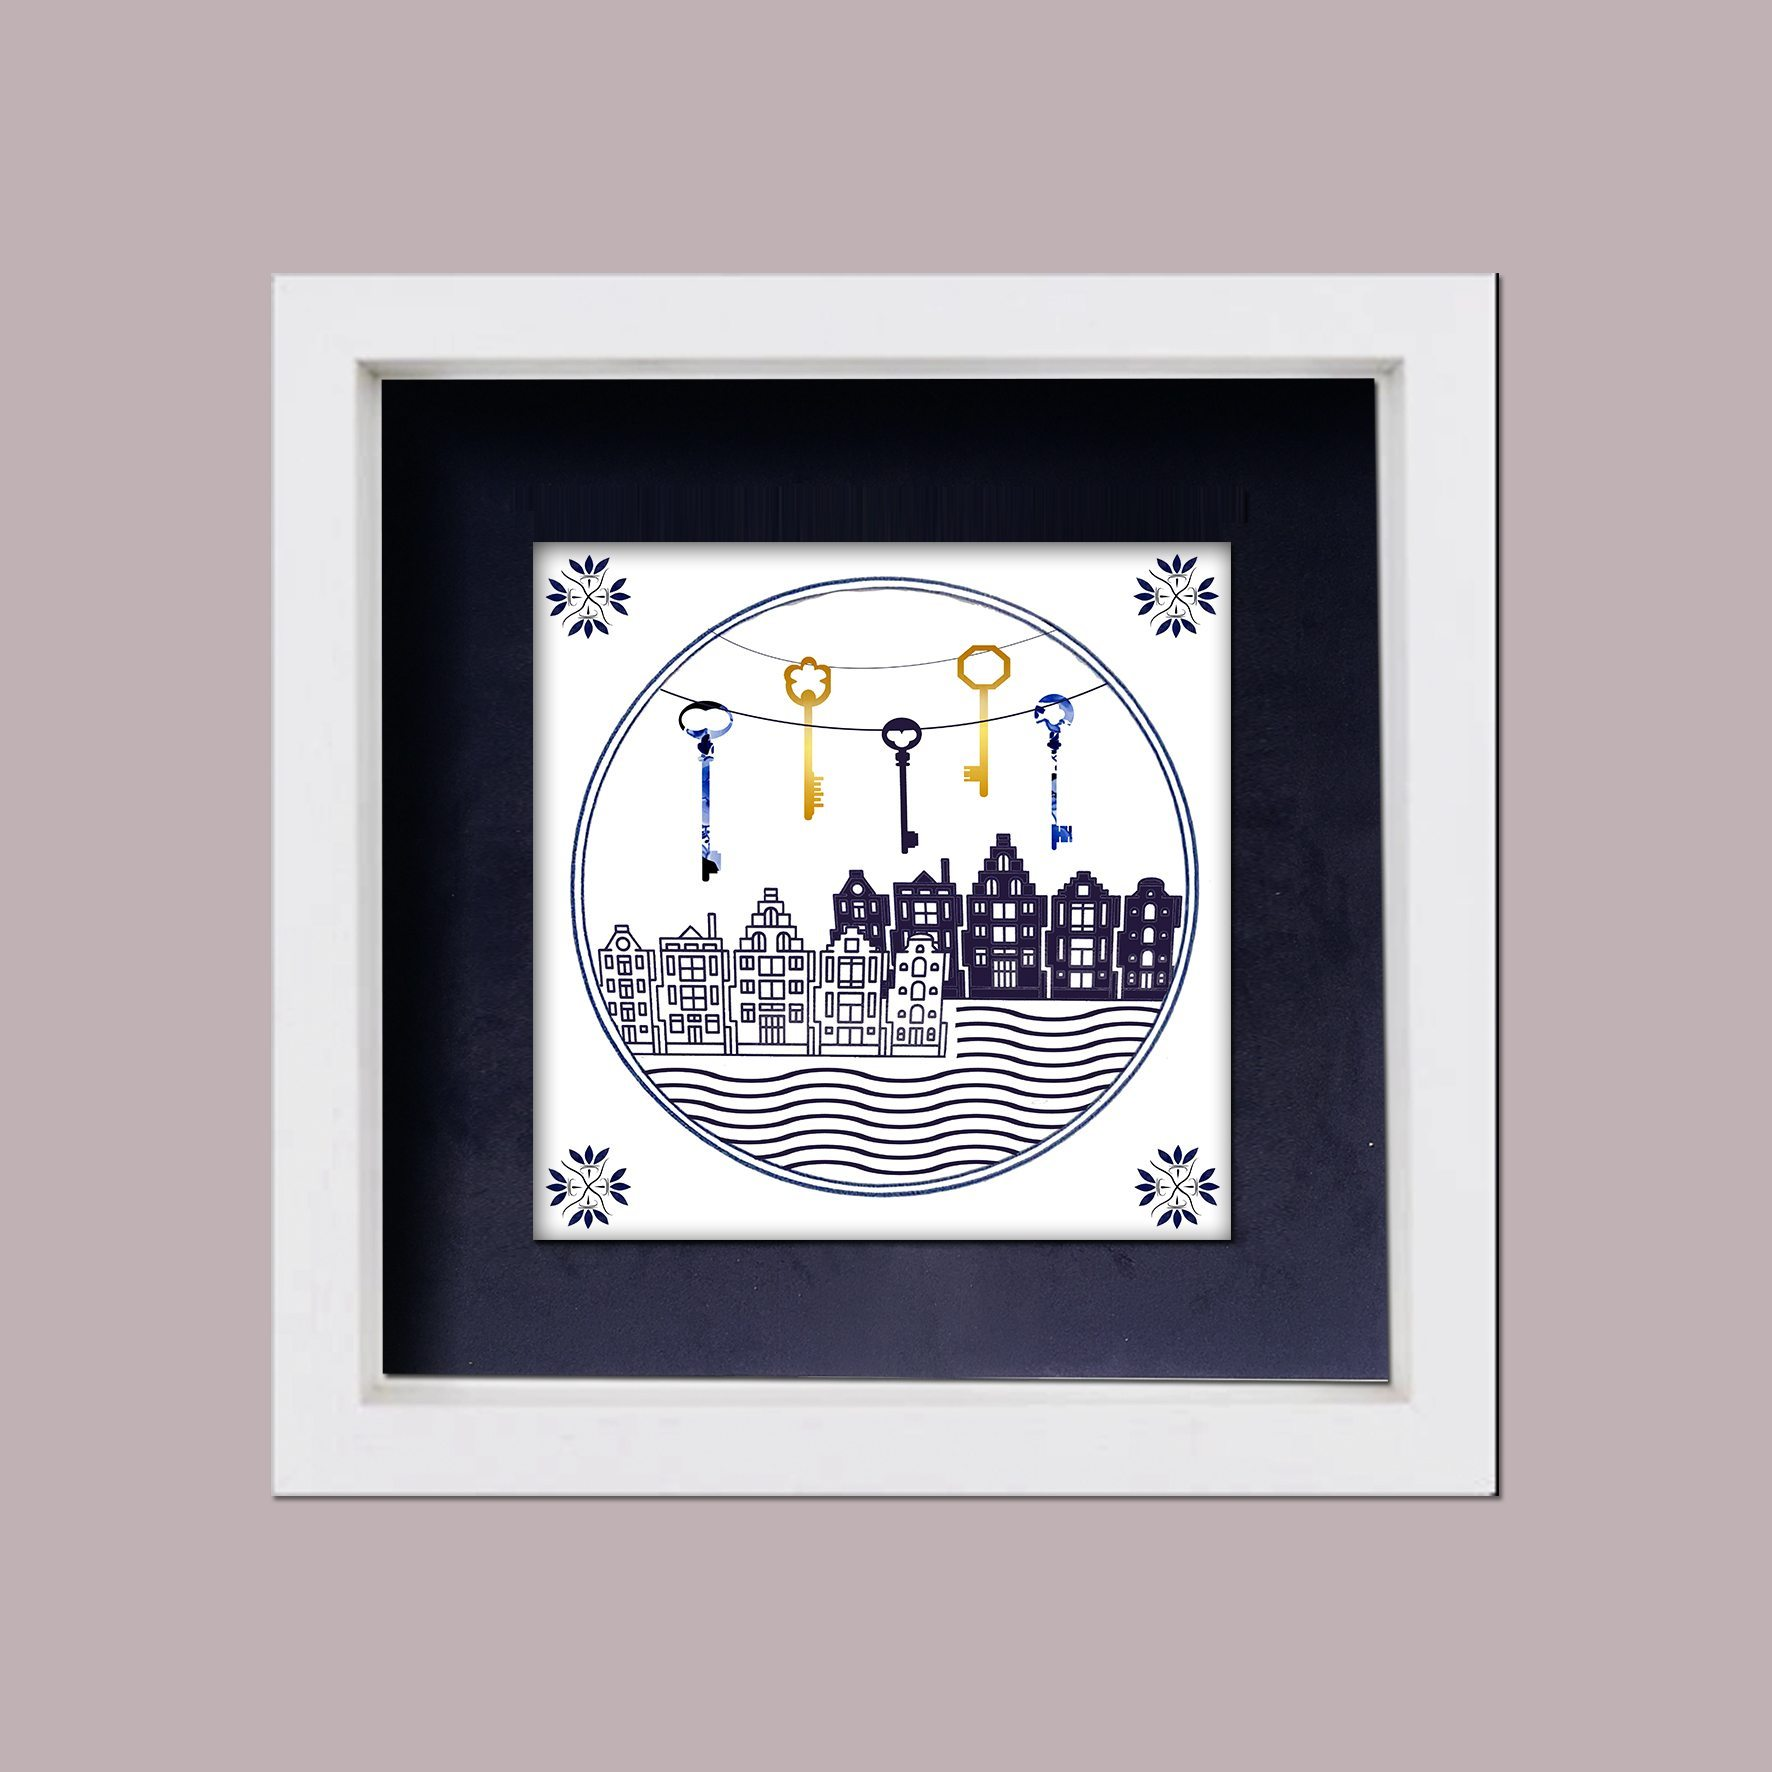 Irish Gifts For New Home - Gift Ideas